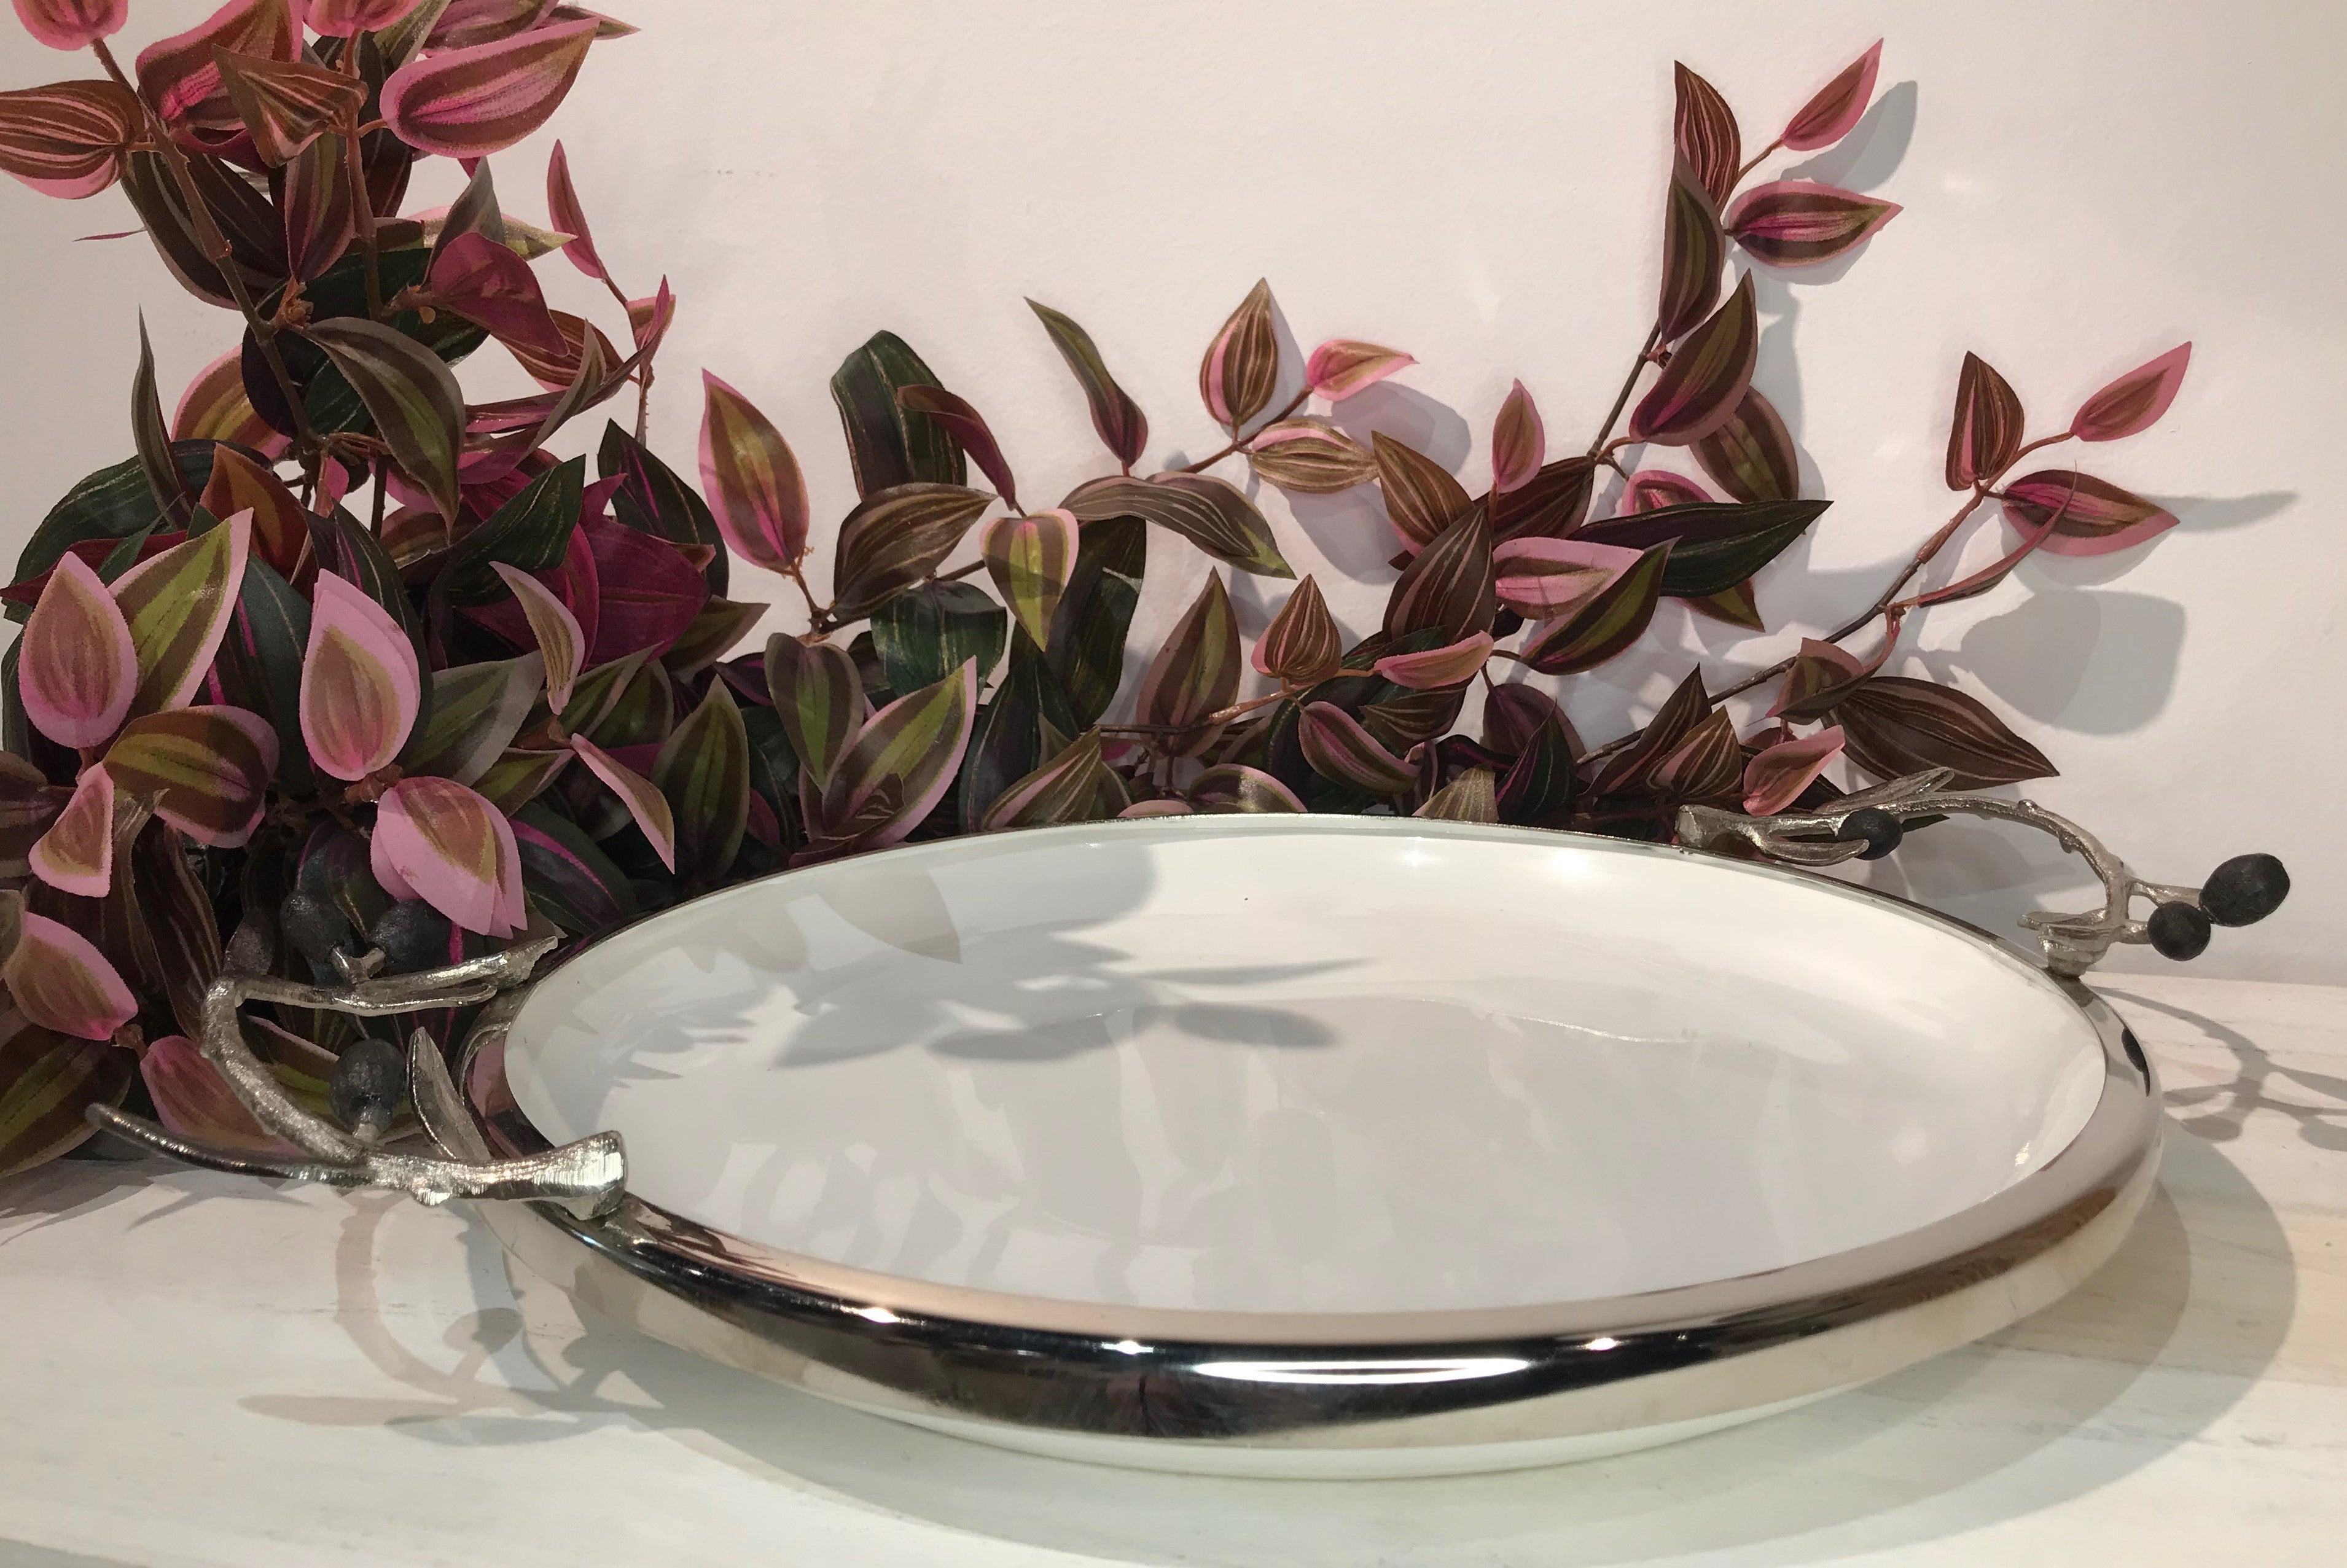 Olive Ceramic Round Plate With Silver Rim